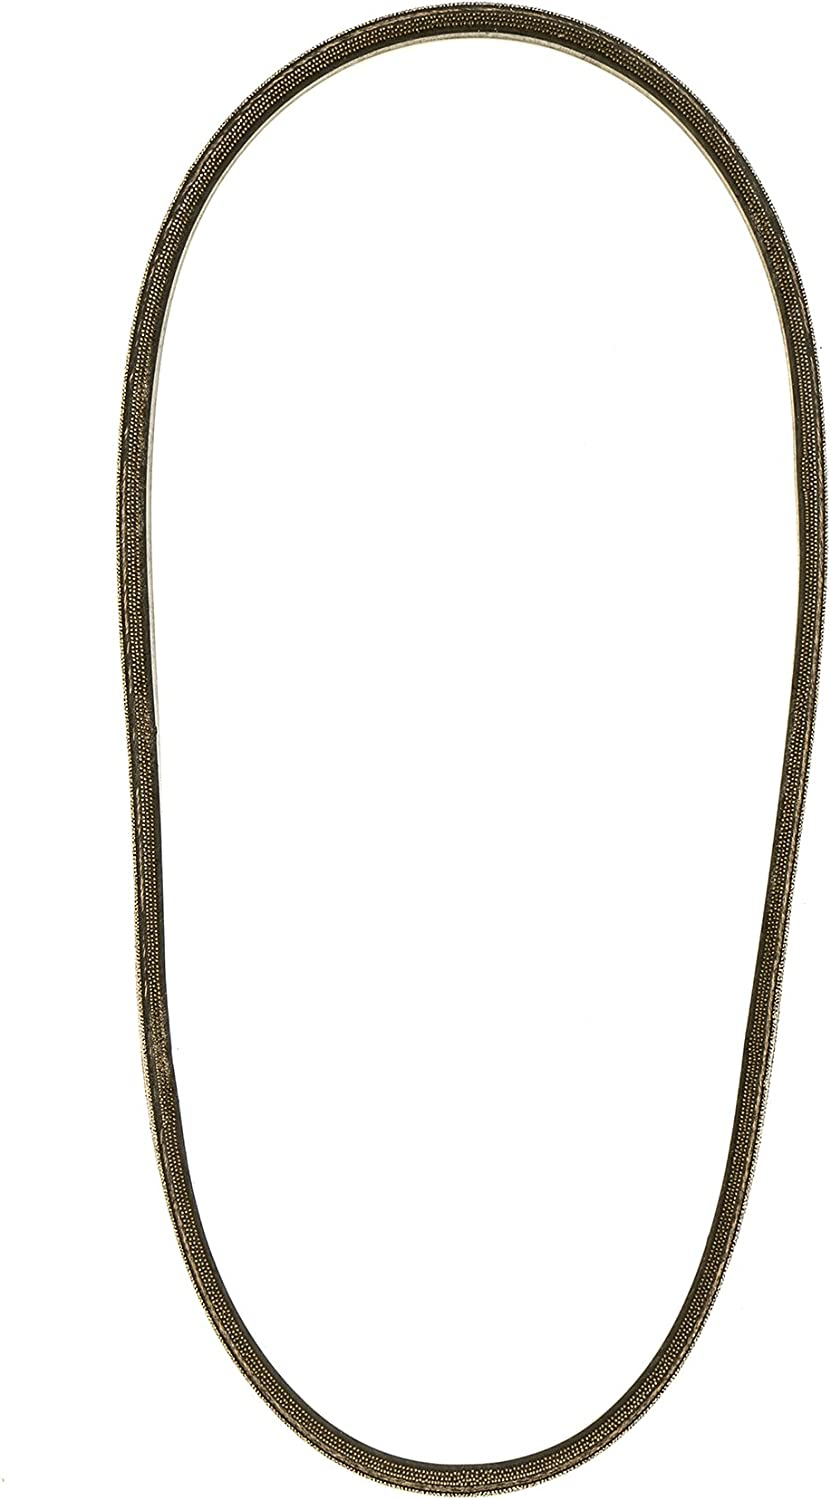 D/&D PowerDrive 532175436 AYP American Yard Products Kevlar Replacement Belt